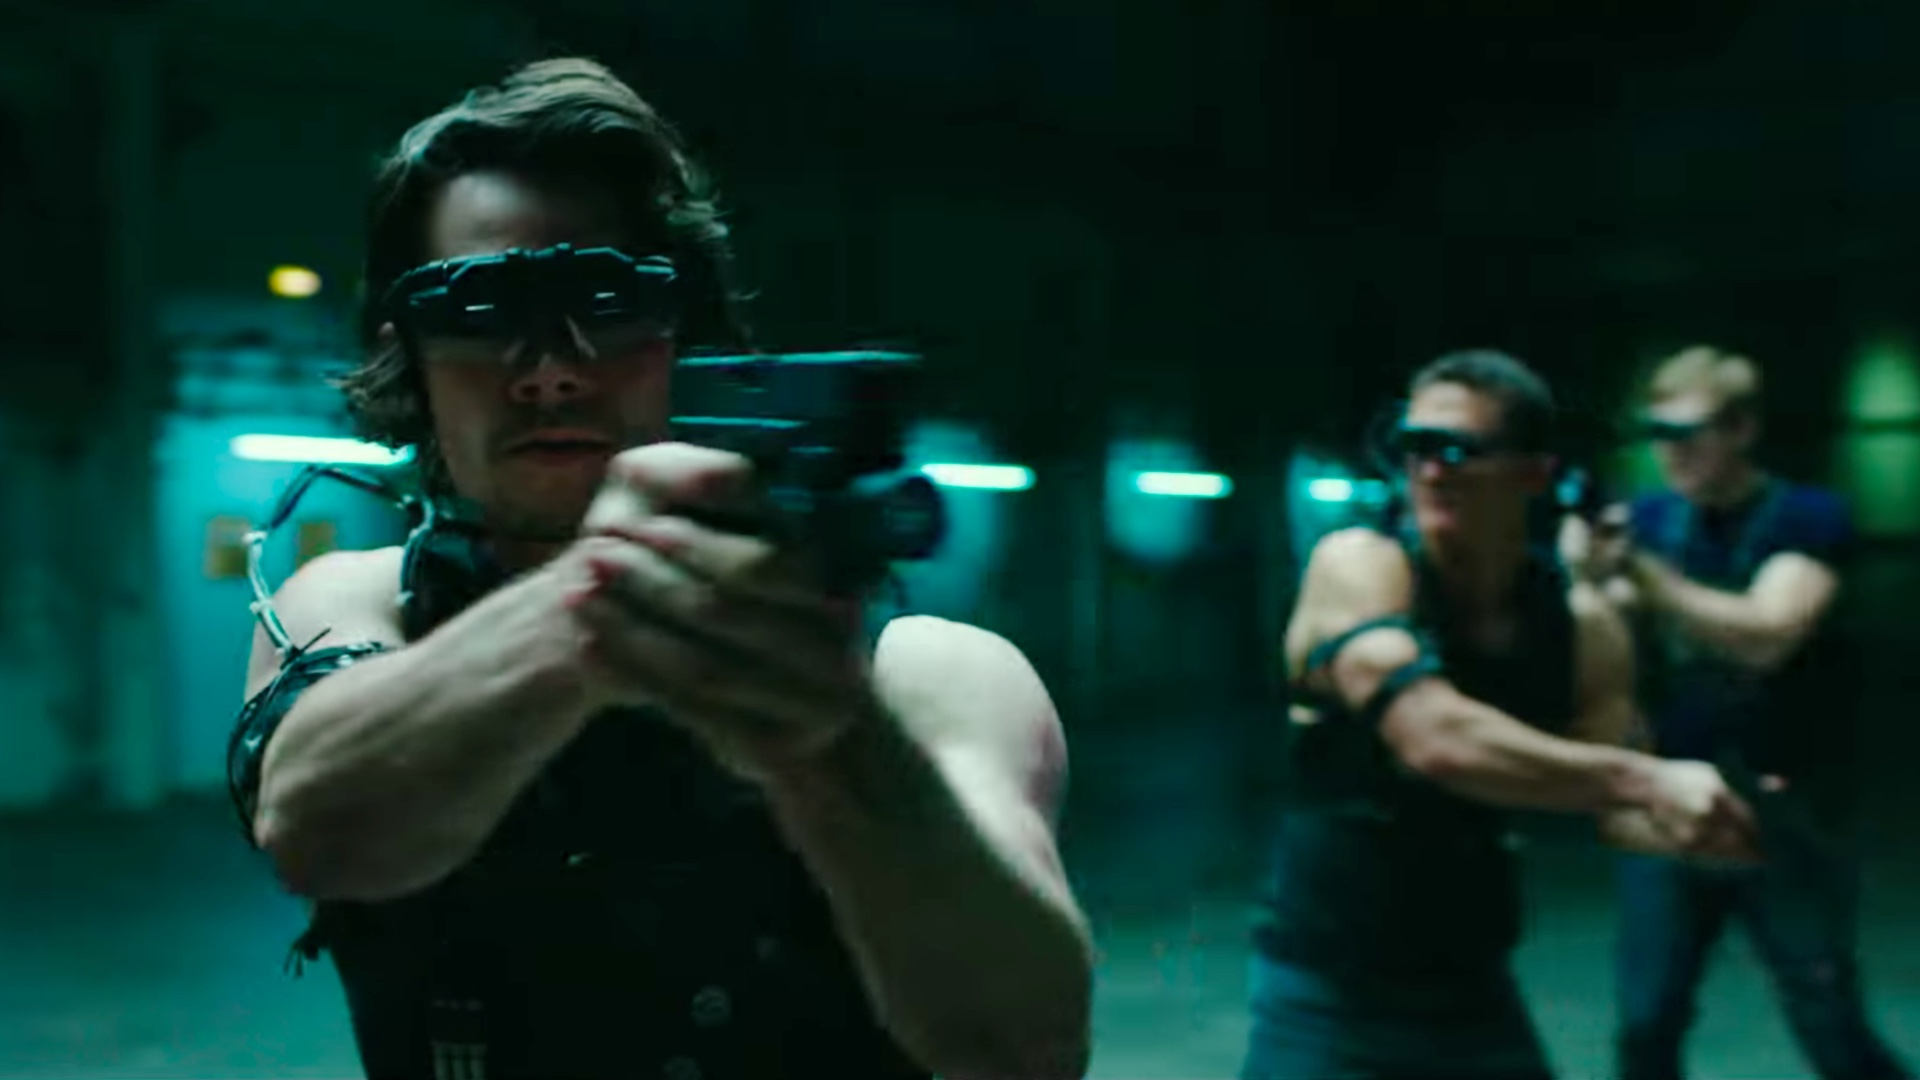 f1b425d502 The first trailer has been released for the upcoming action thriller American  Assassin in which Michael Keaton trains Dylan O Brien (The Maze Runner) to  be ...